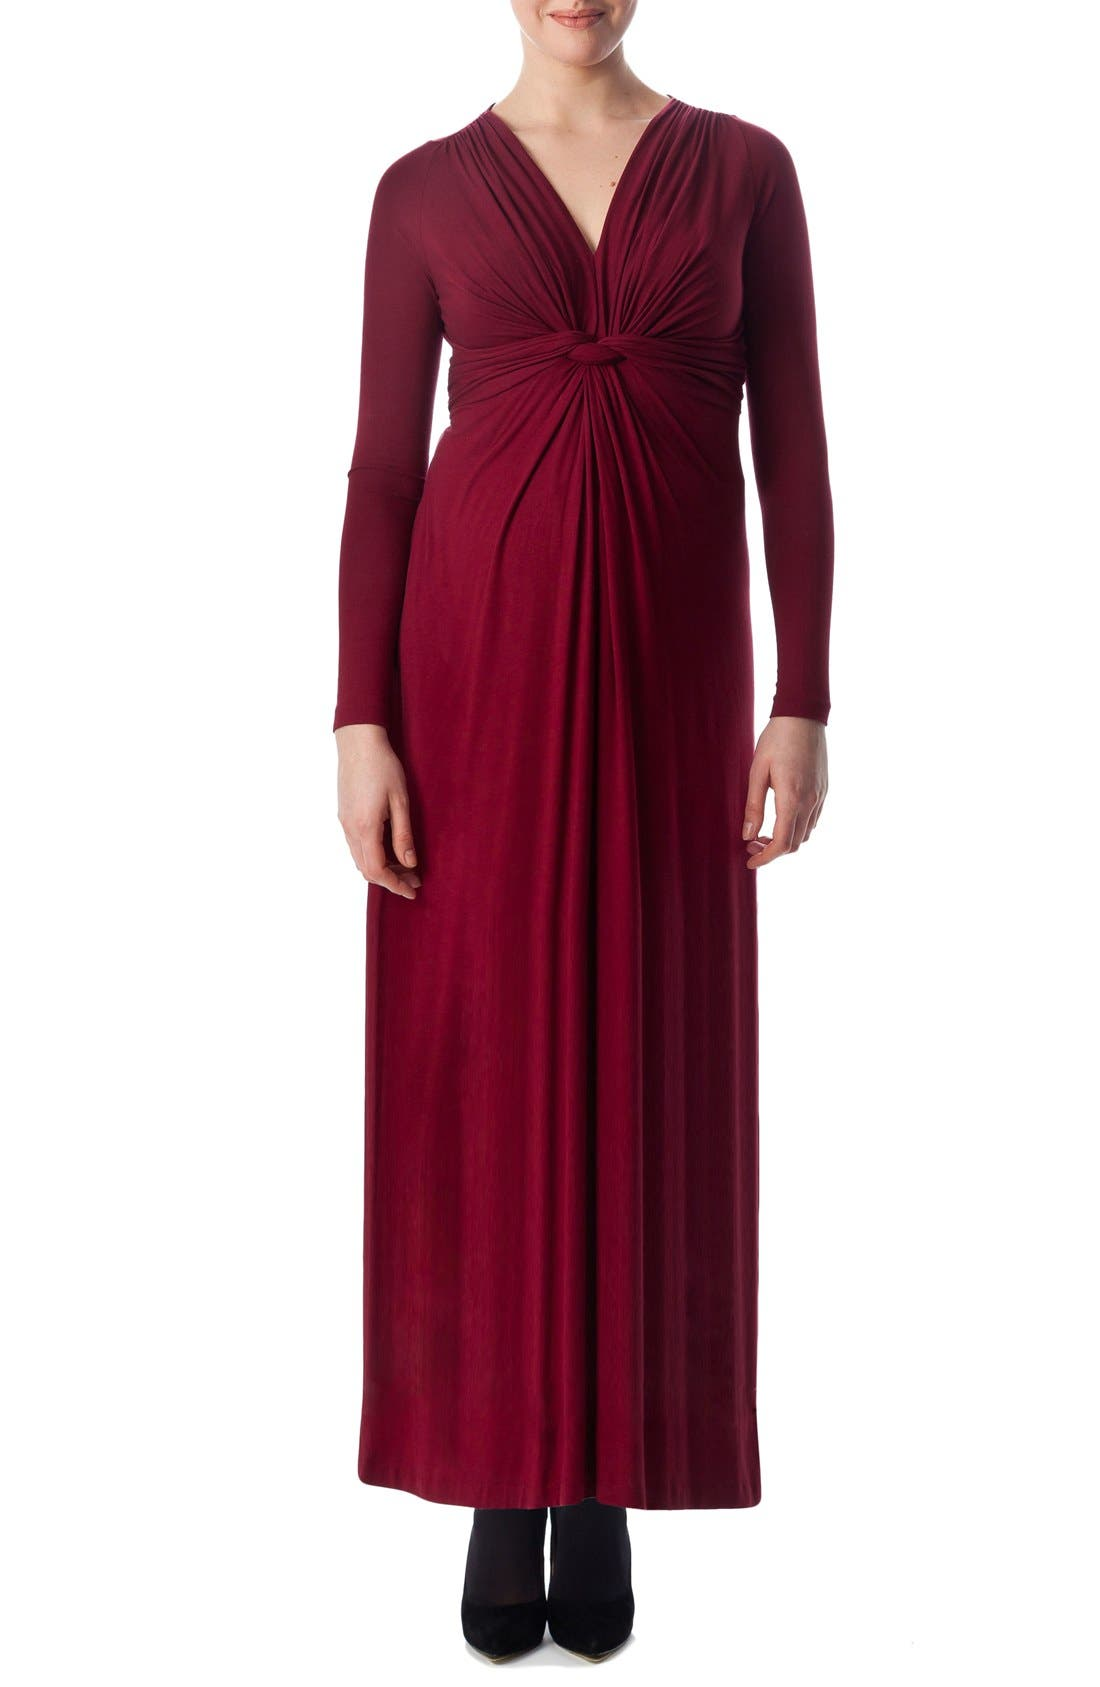 PIETRO BRUNELLI Madonna Maternity Maxi Dress